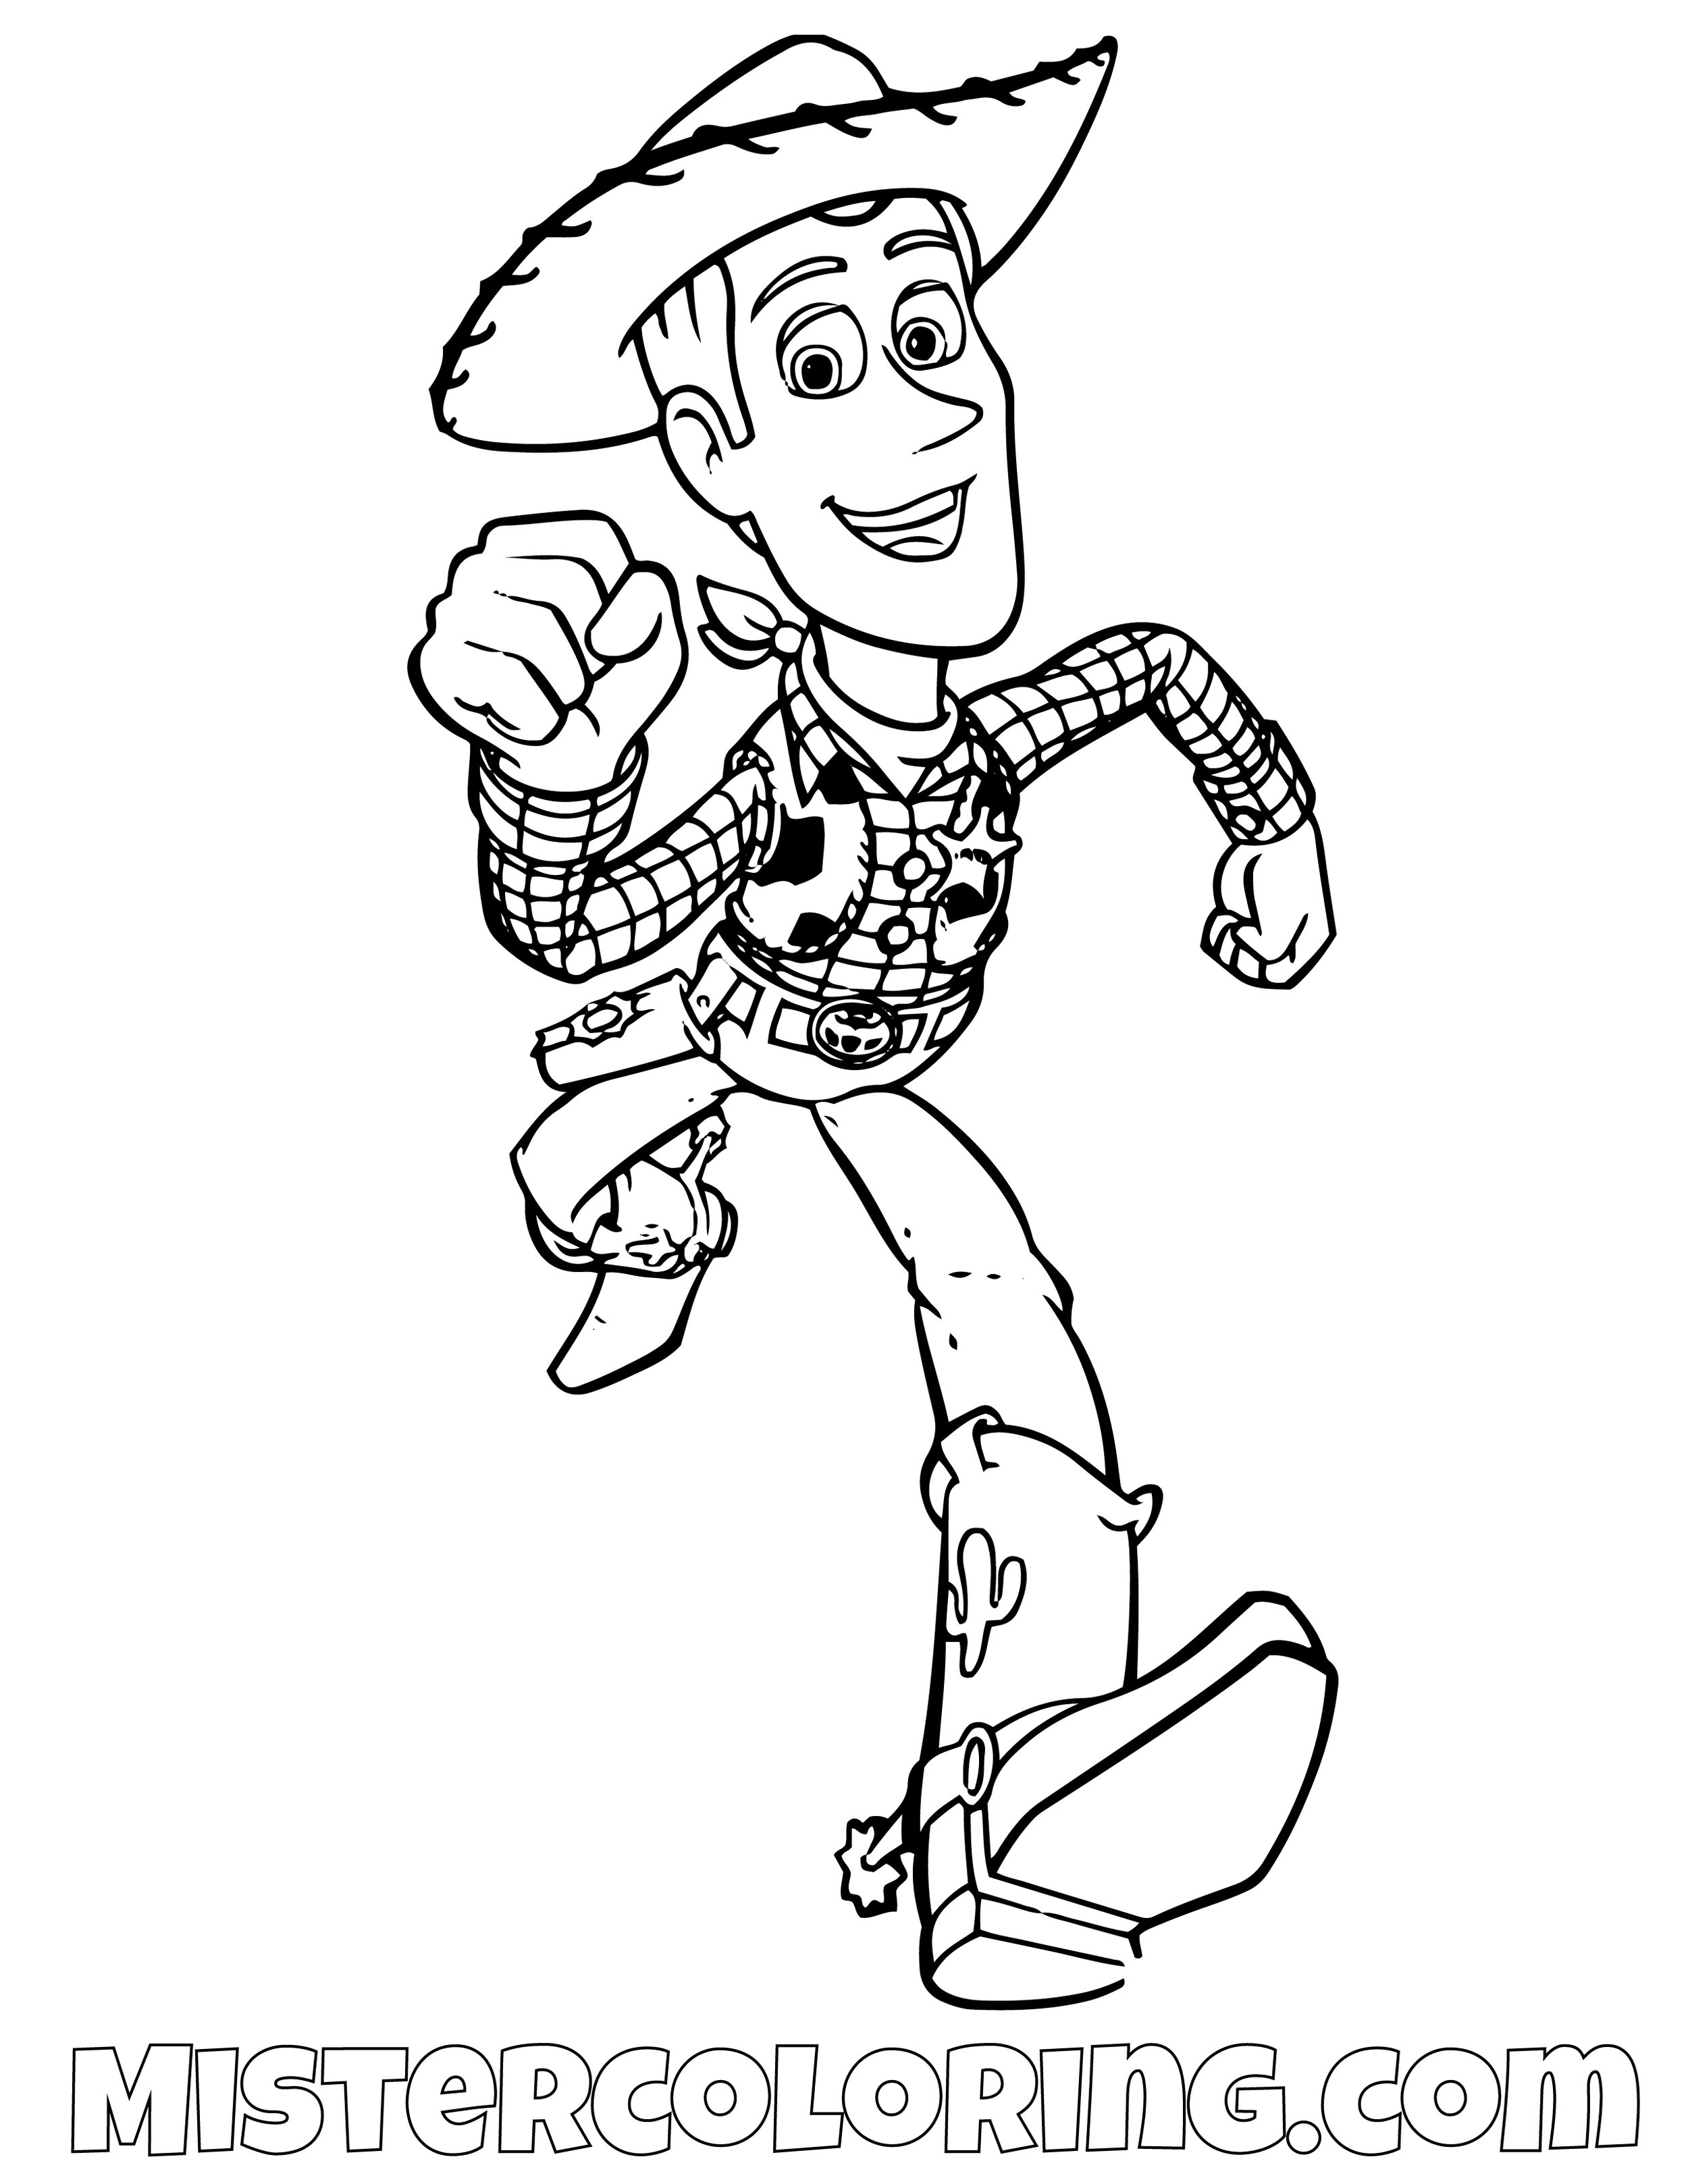 Sheriff Woody Running Toy Story Coloring Page